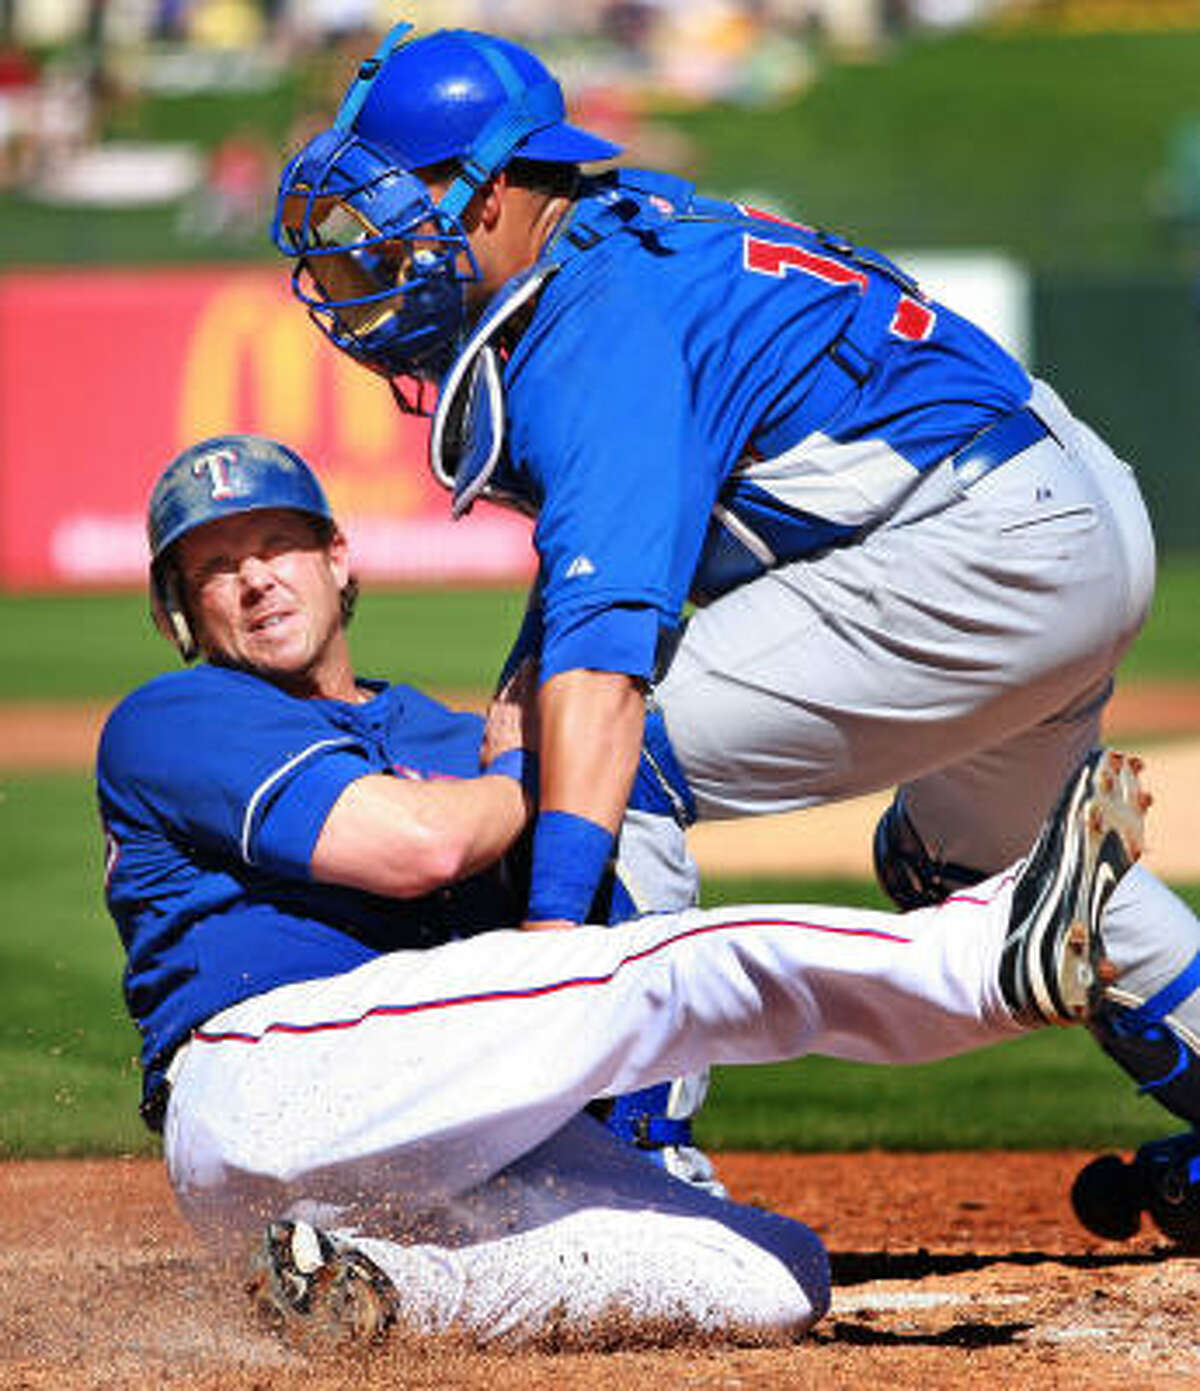 Chicago Cubs catcher Geovany Soto (right) tags out Texas Rangers outfielder Frank Catalanotta in the second inning.